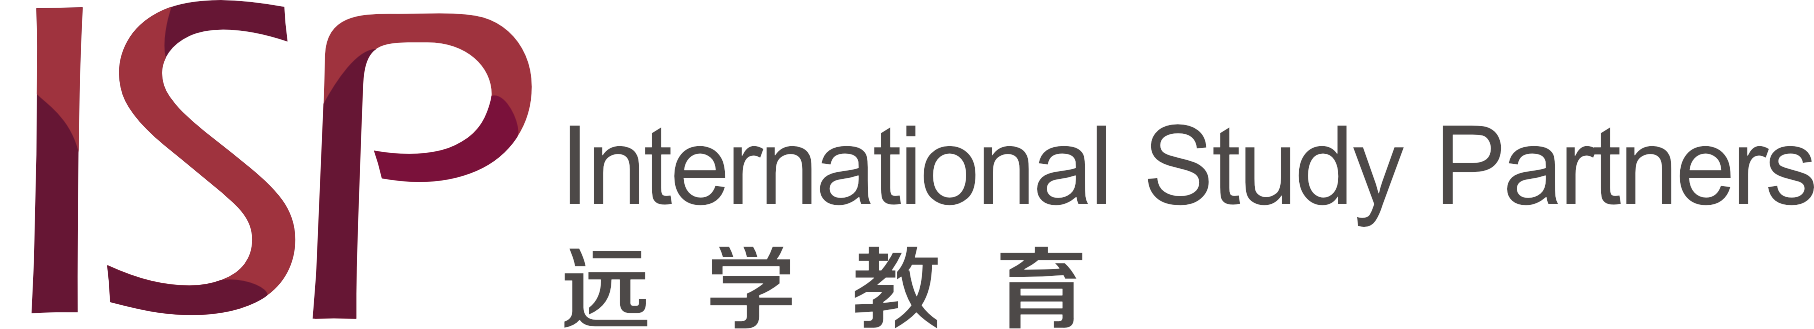 International Study Partners logo